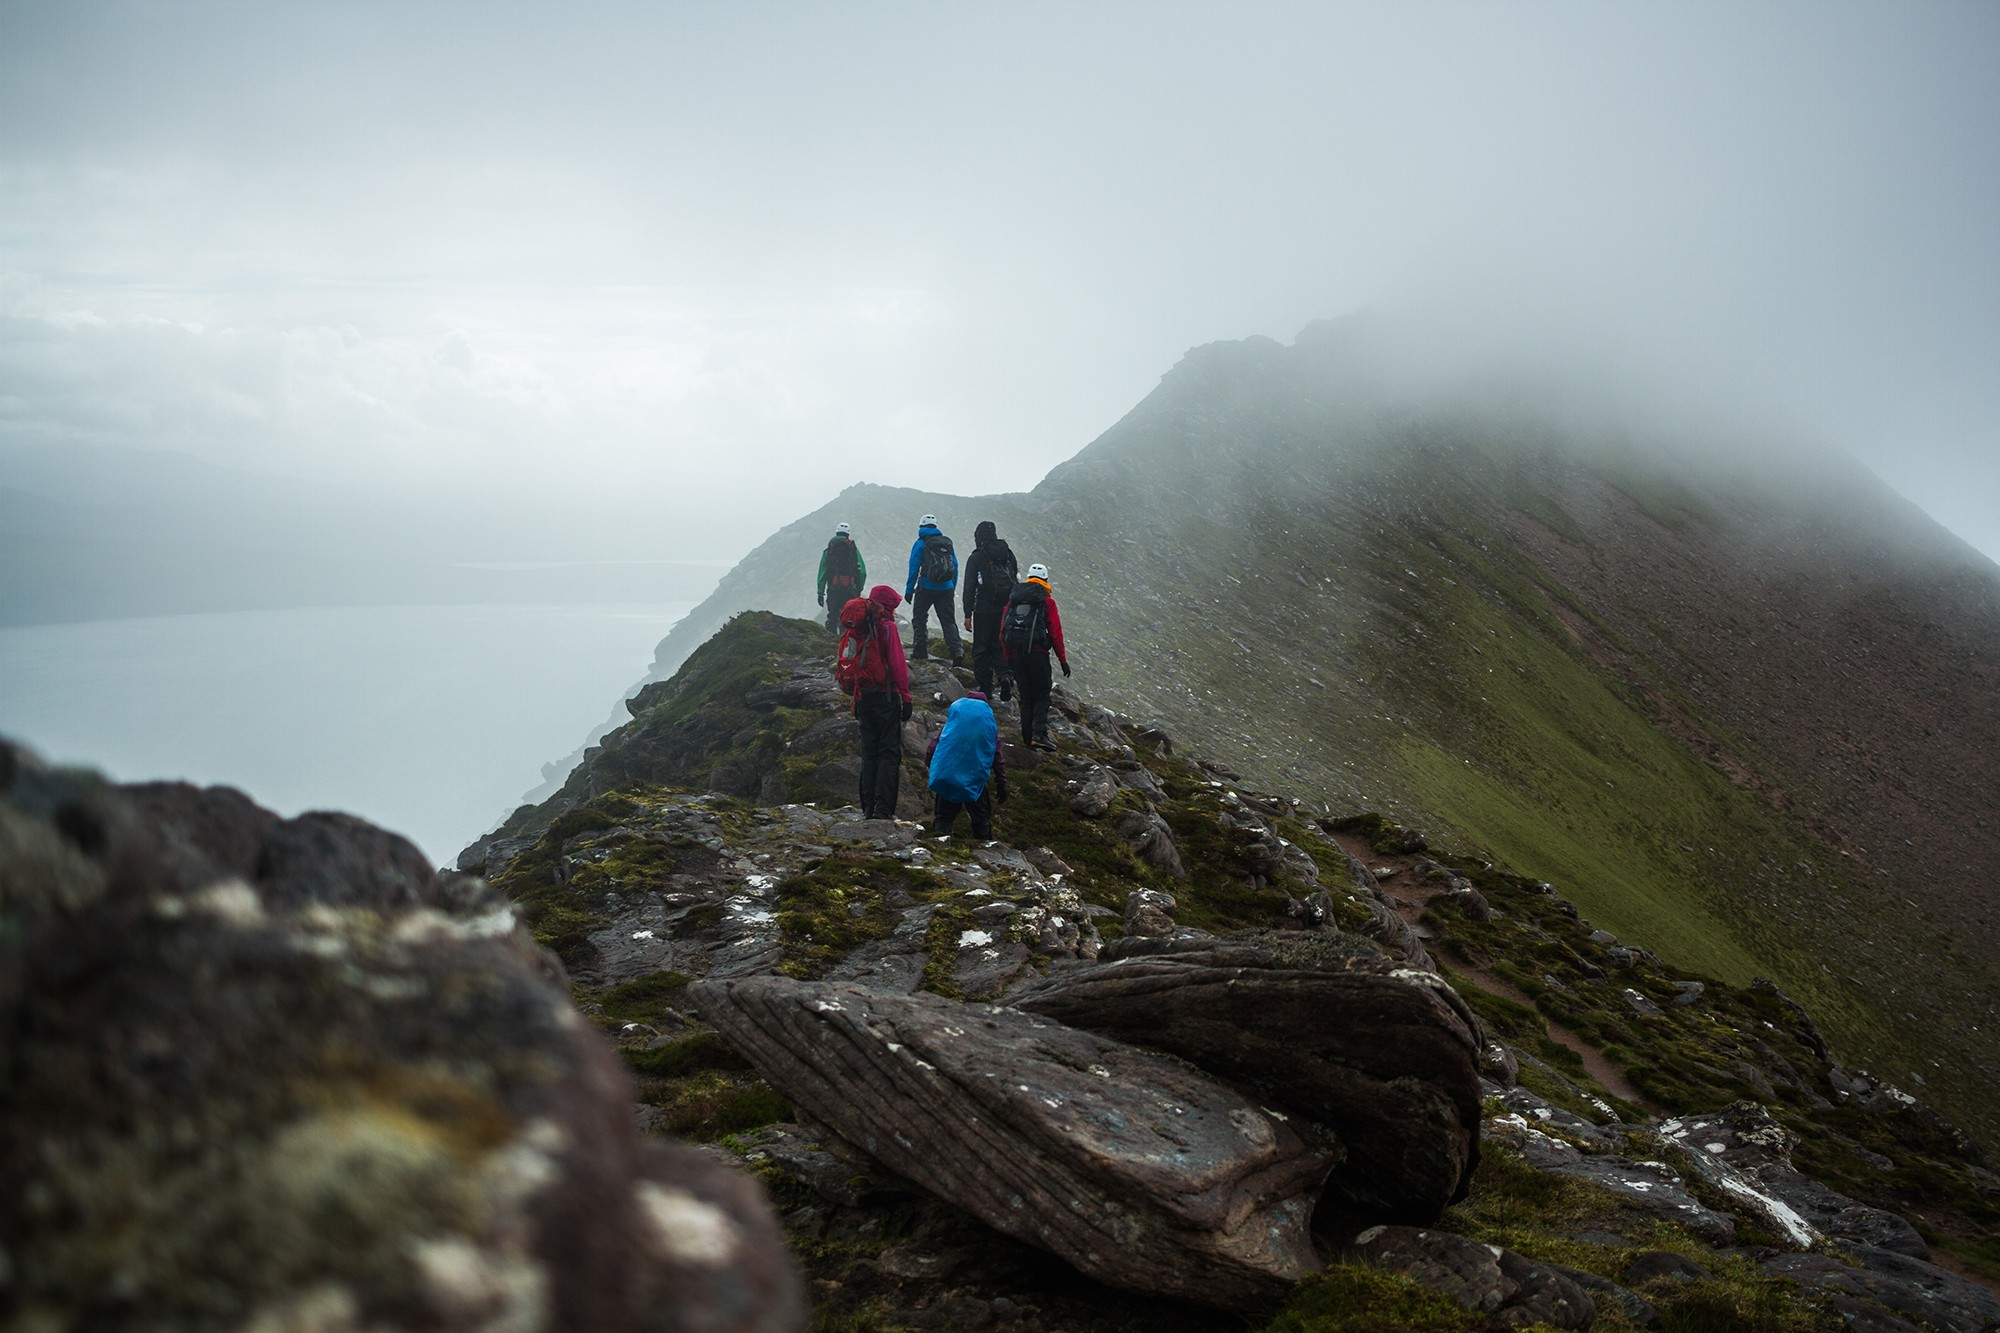 Final summit on Seven peaks of Coigach, shot by Jessie Leong